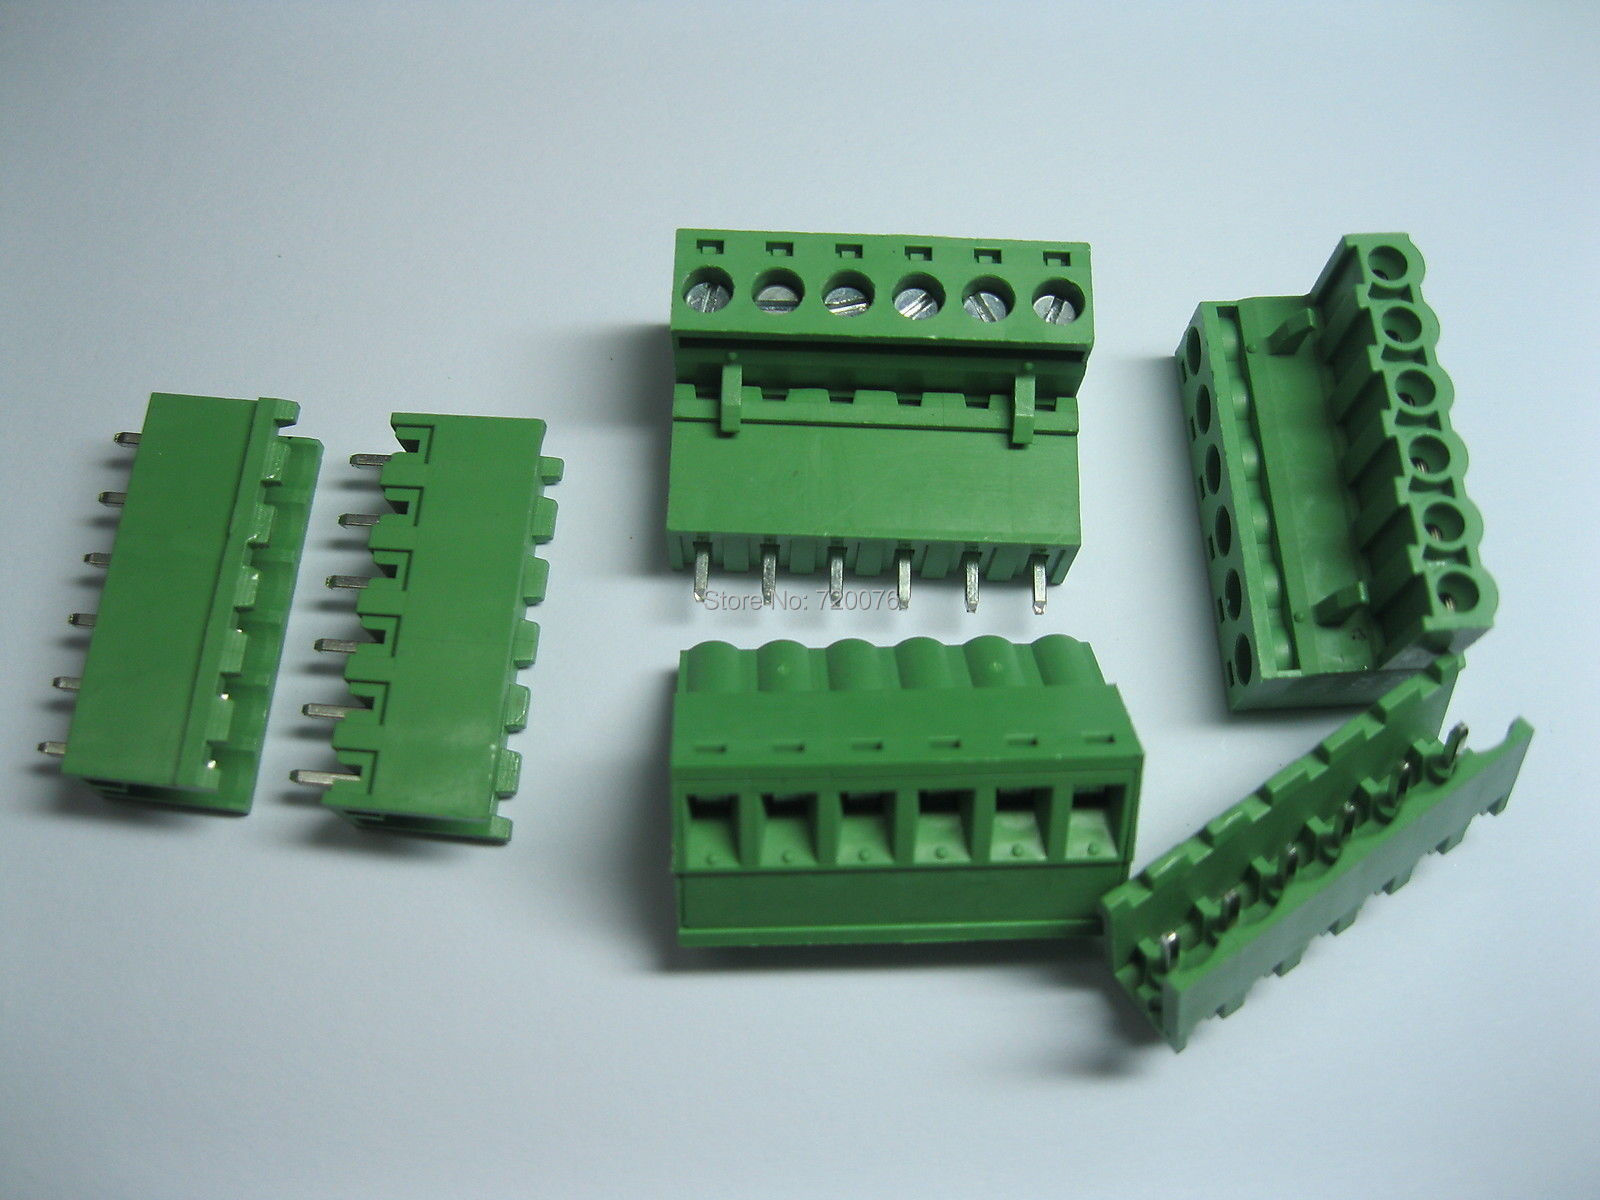 100 pcs Green 6 pin 5.08mm Screw Terminal Block Connector Pluggable Type 100 pcs green 6 pin 5 08mm screw terminal block connector pluggable type